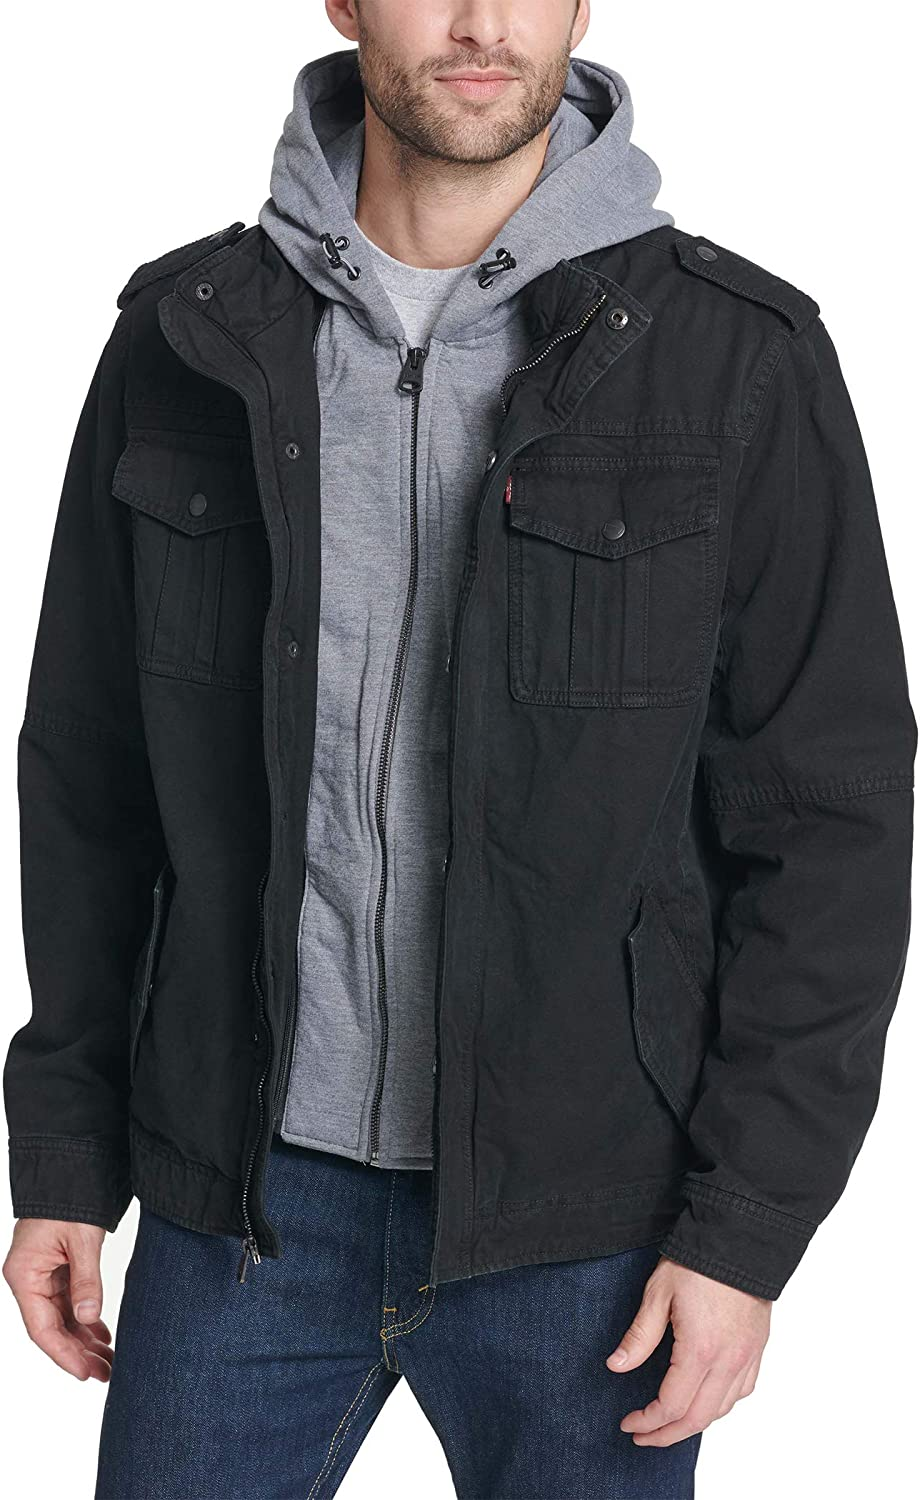 Levi's Men's Washed Cotton 40% OFF Cheap Sale Military Jacket Hooded San Francisco Mall